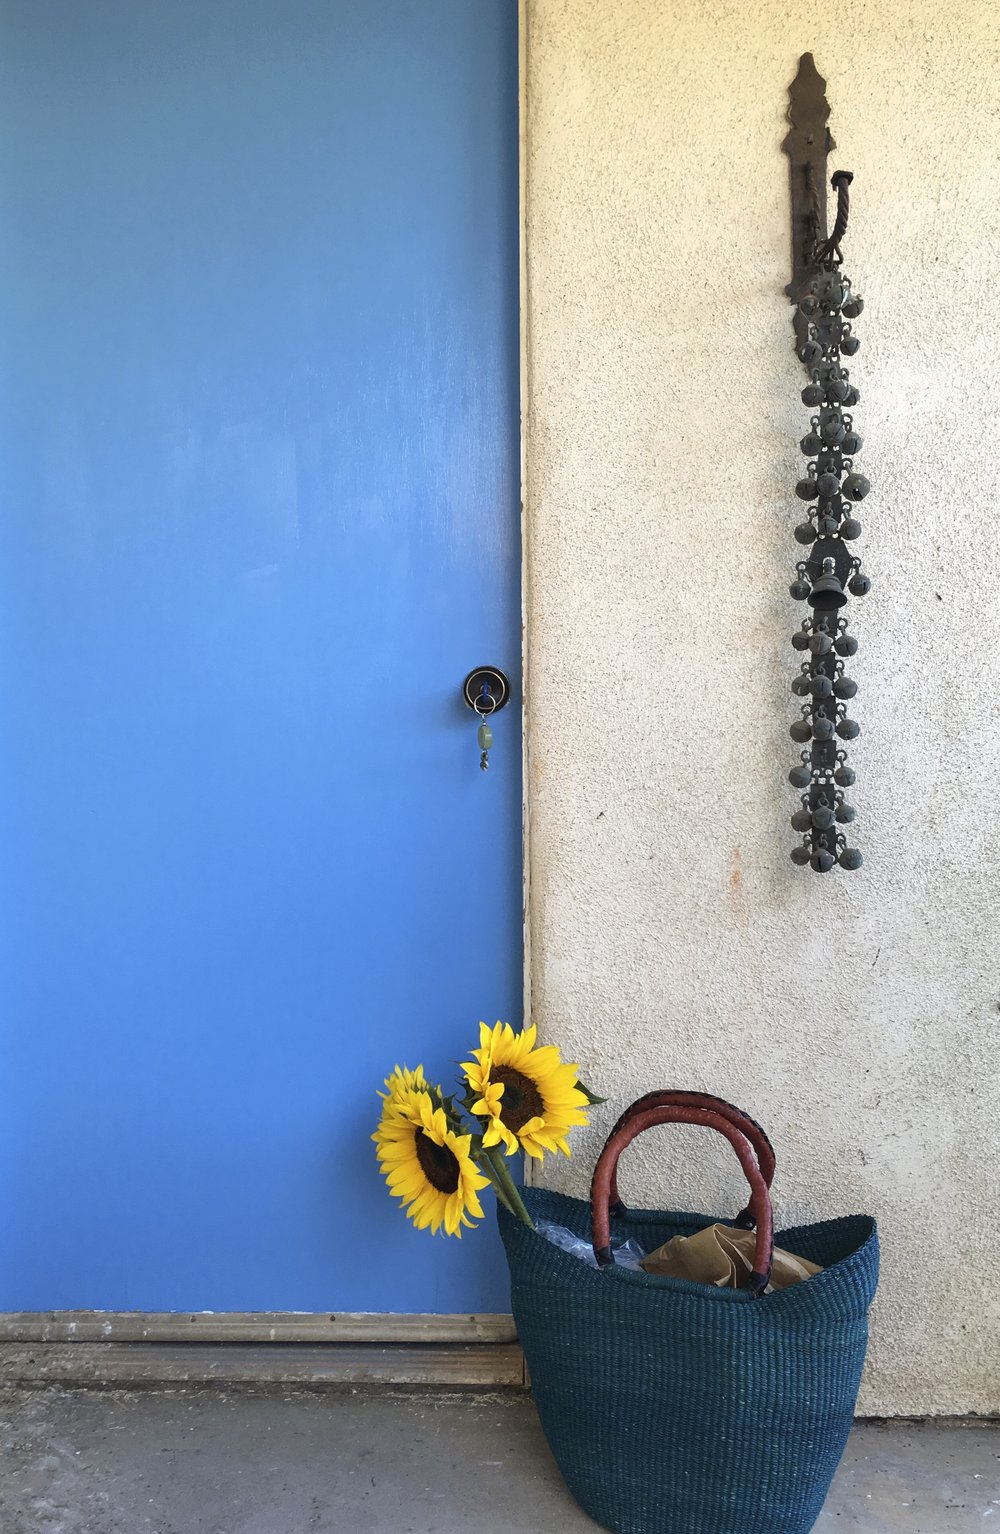 Day 1:  Excitement! I have the key to the Beatrice Wood Studio for the next month.  Wow!  Entering the studio on my first day bringing flowers to show gratitude for this opportunity.   -